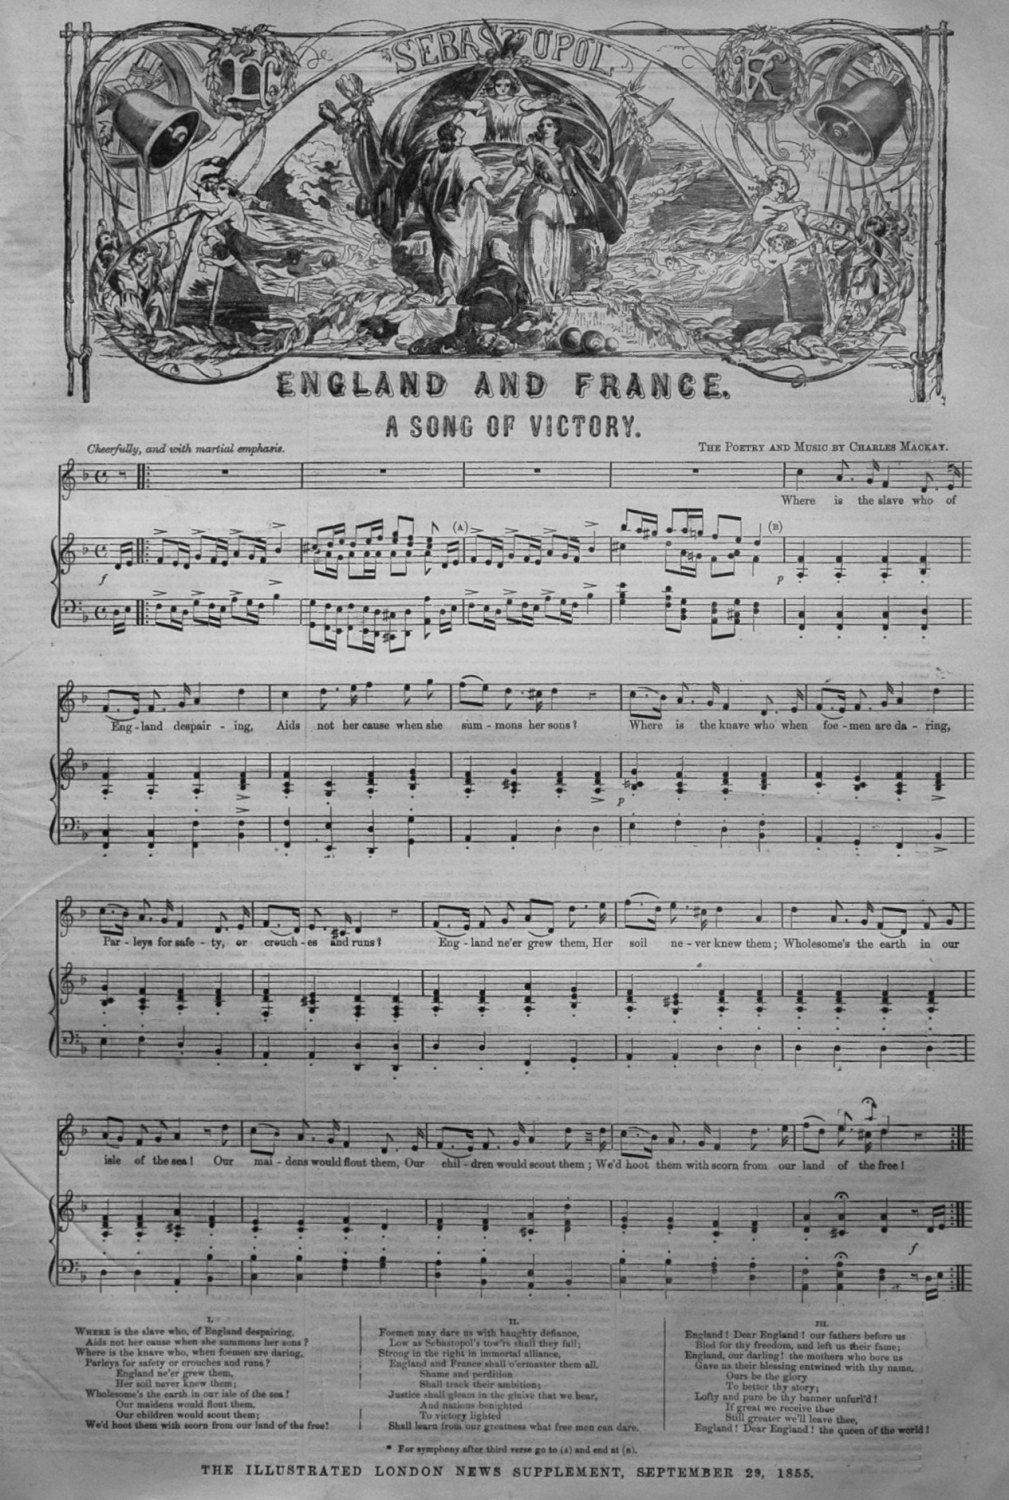 Sebastopol. England and France. A Song of Victory. 1855